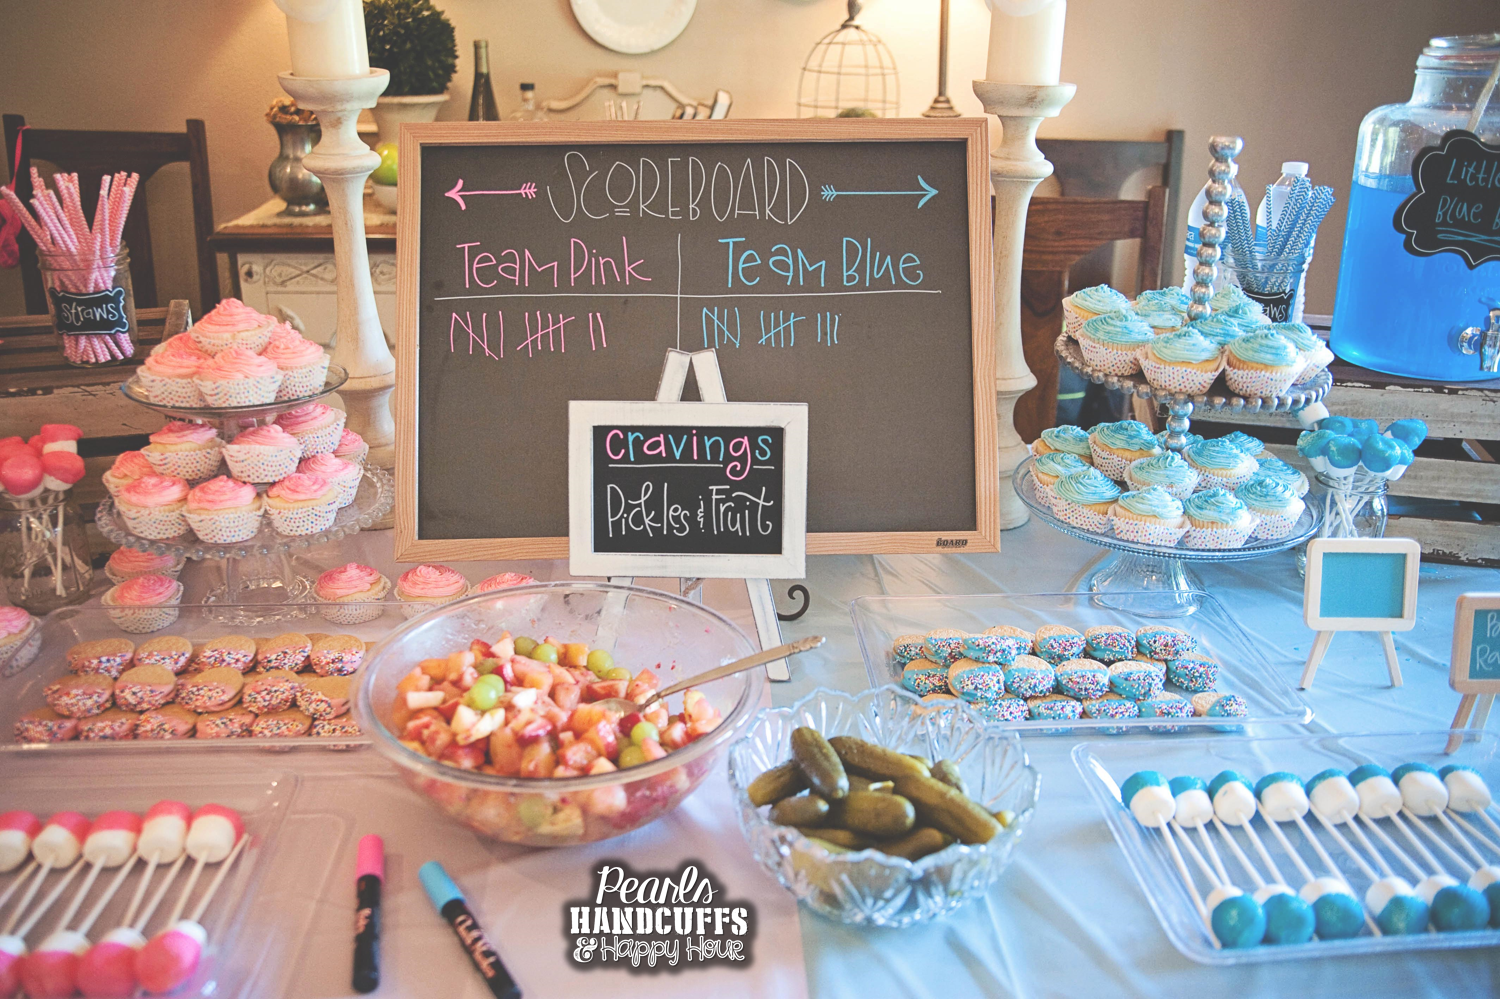 Pearls, handcuffs, and happy hour: gender reveal party